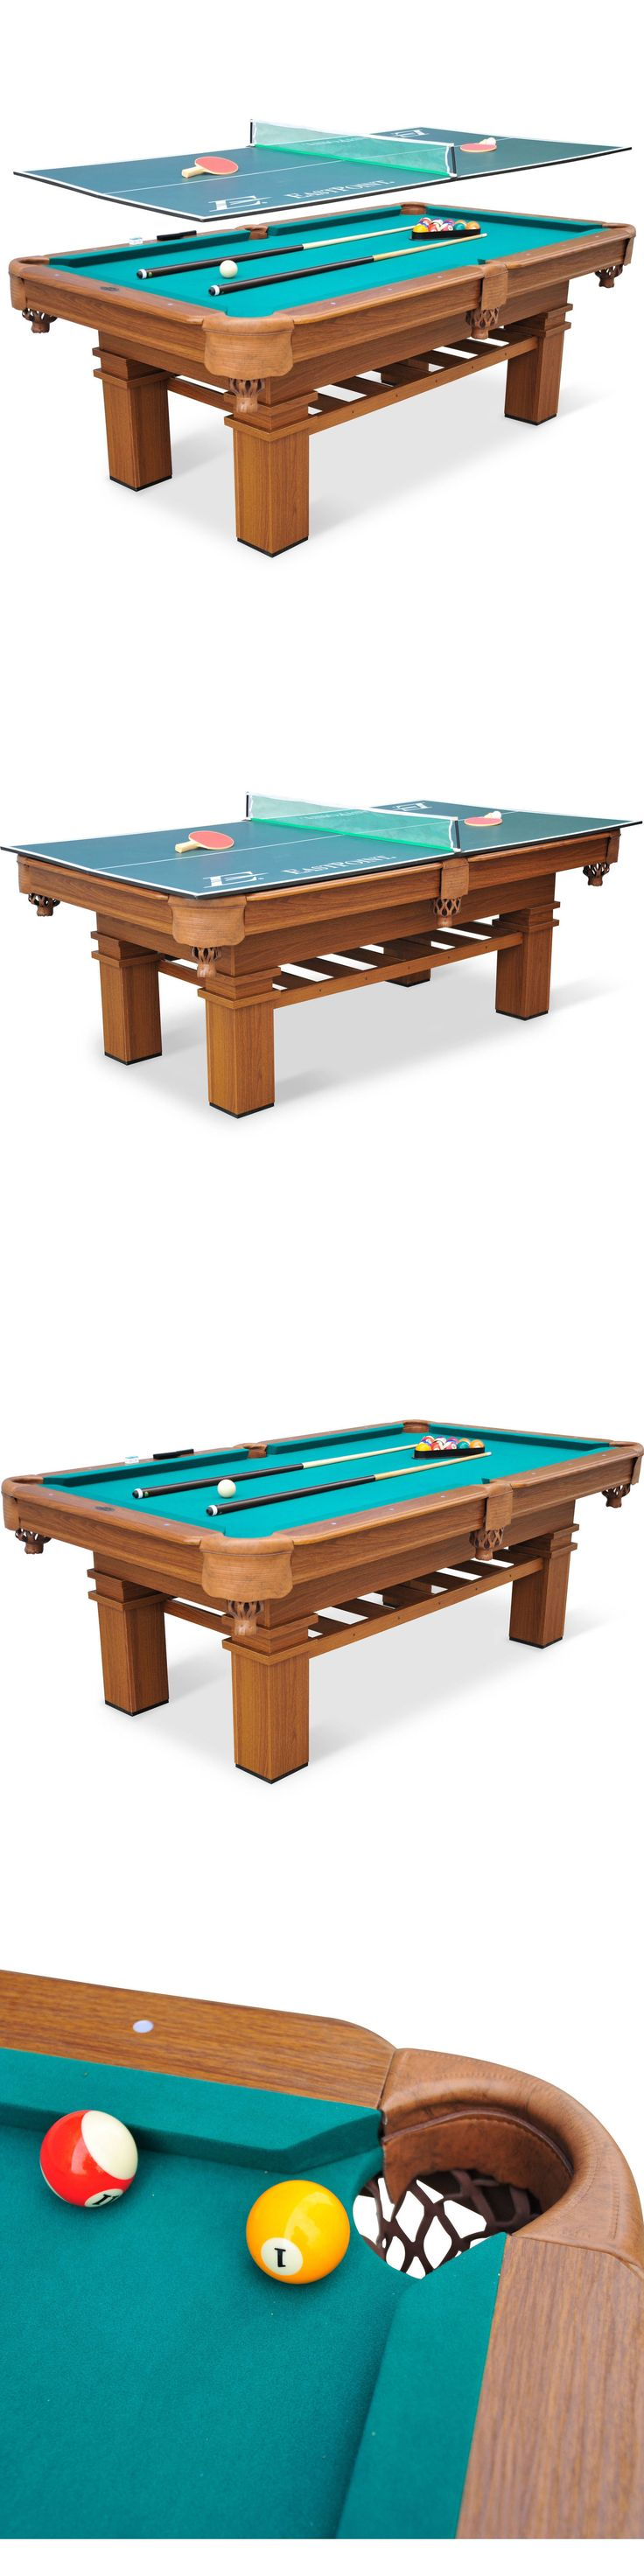 Pool table legs accessories for sale - Tables 21213 Pool Table Billiard Indoor Table Tennis Top Game Room Family Sport Accessories